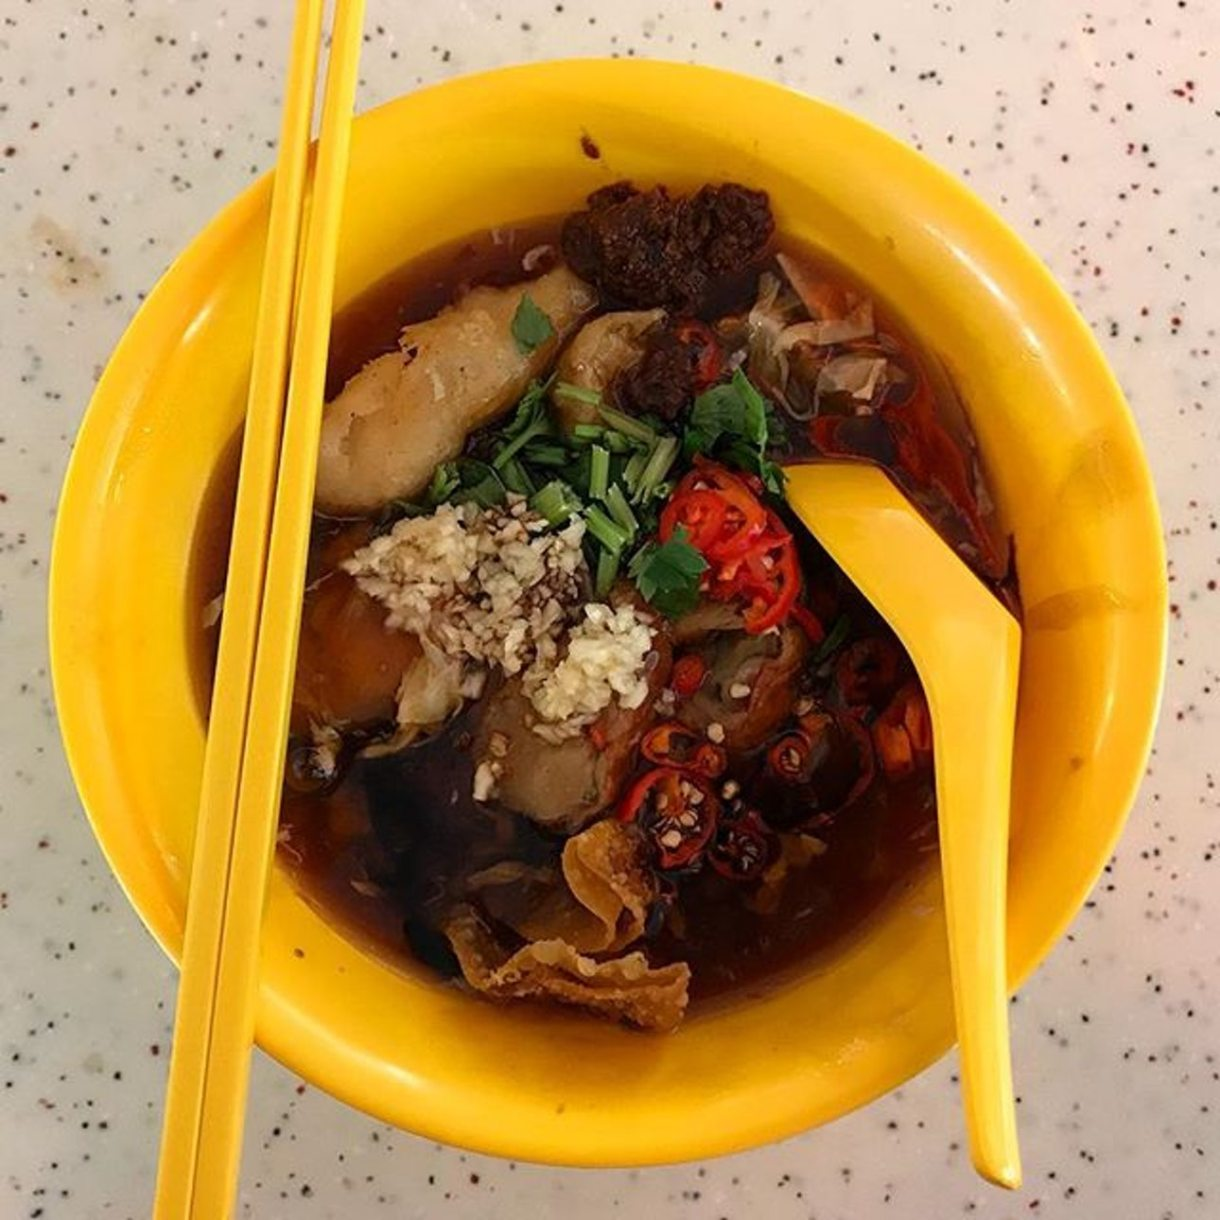 Tiong Bahru Lor Mee